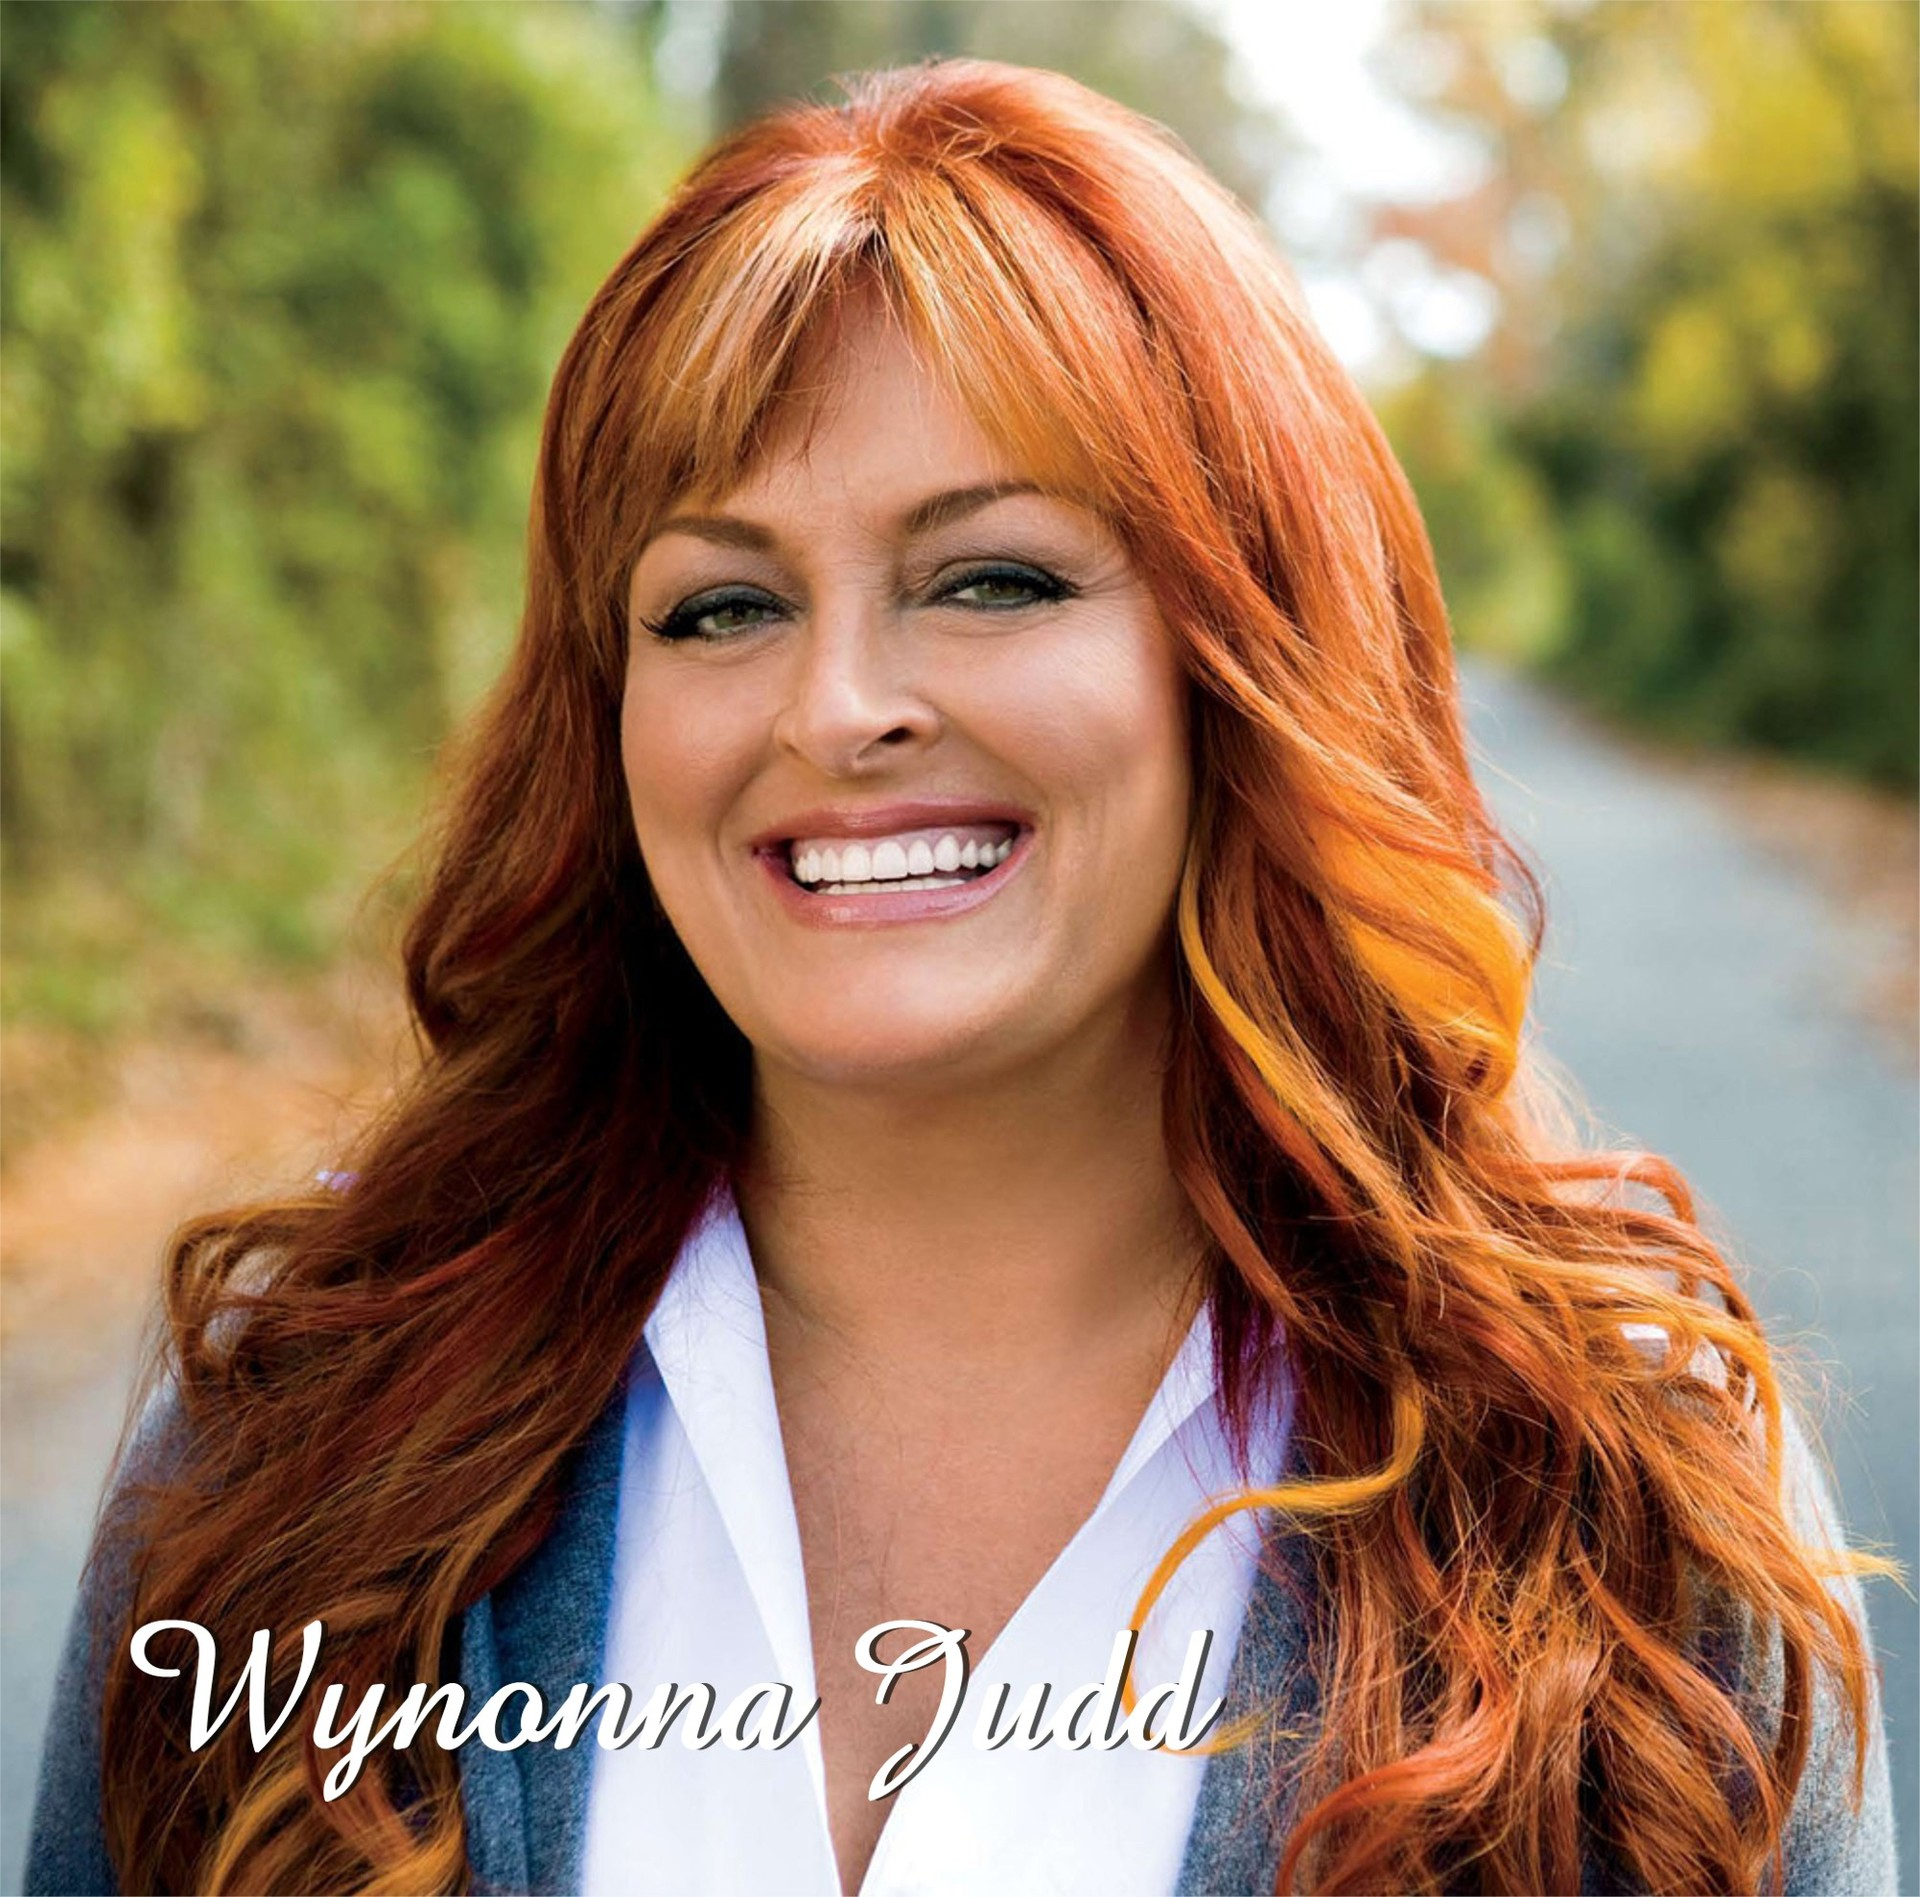 Strictly Country's Unappreciated Wynonna Judd